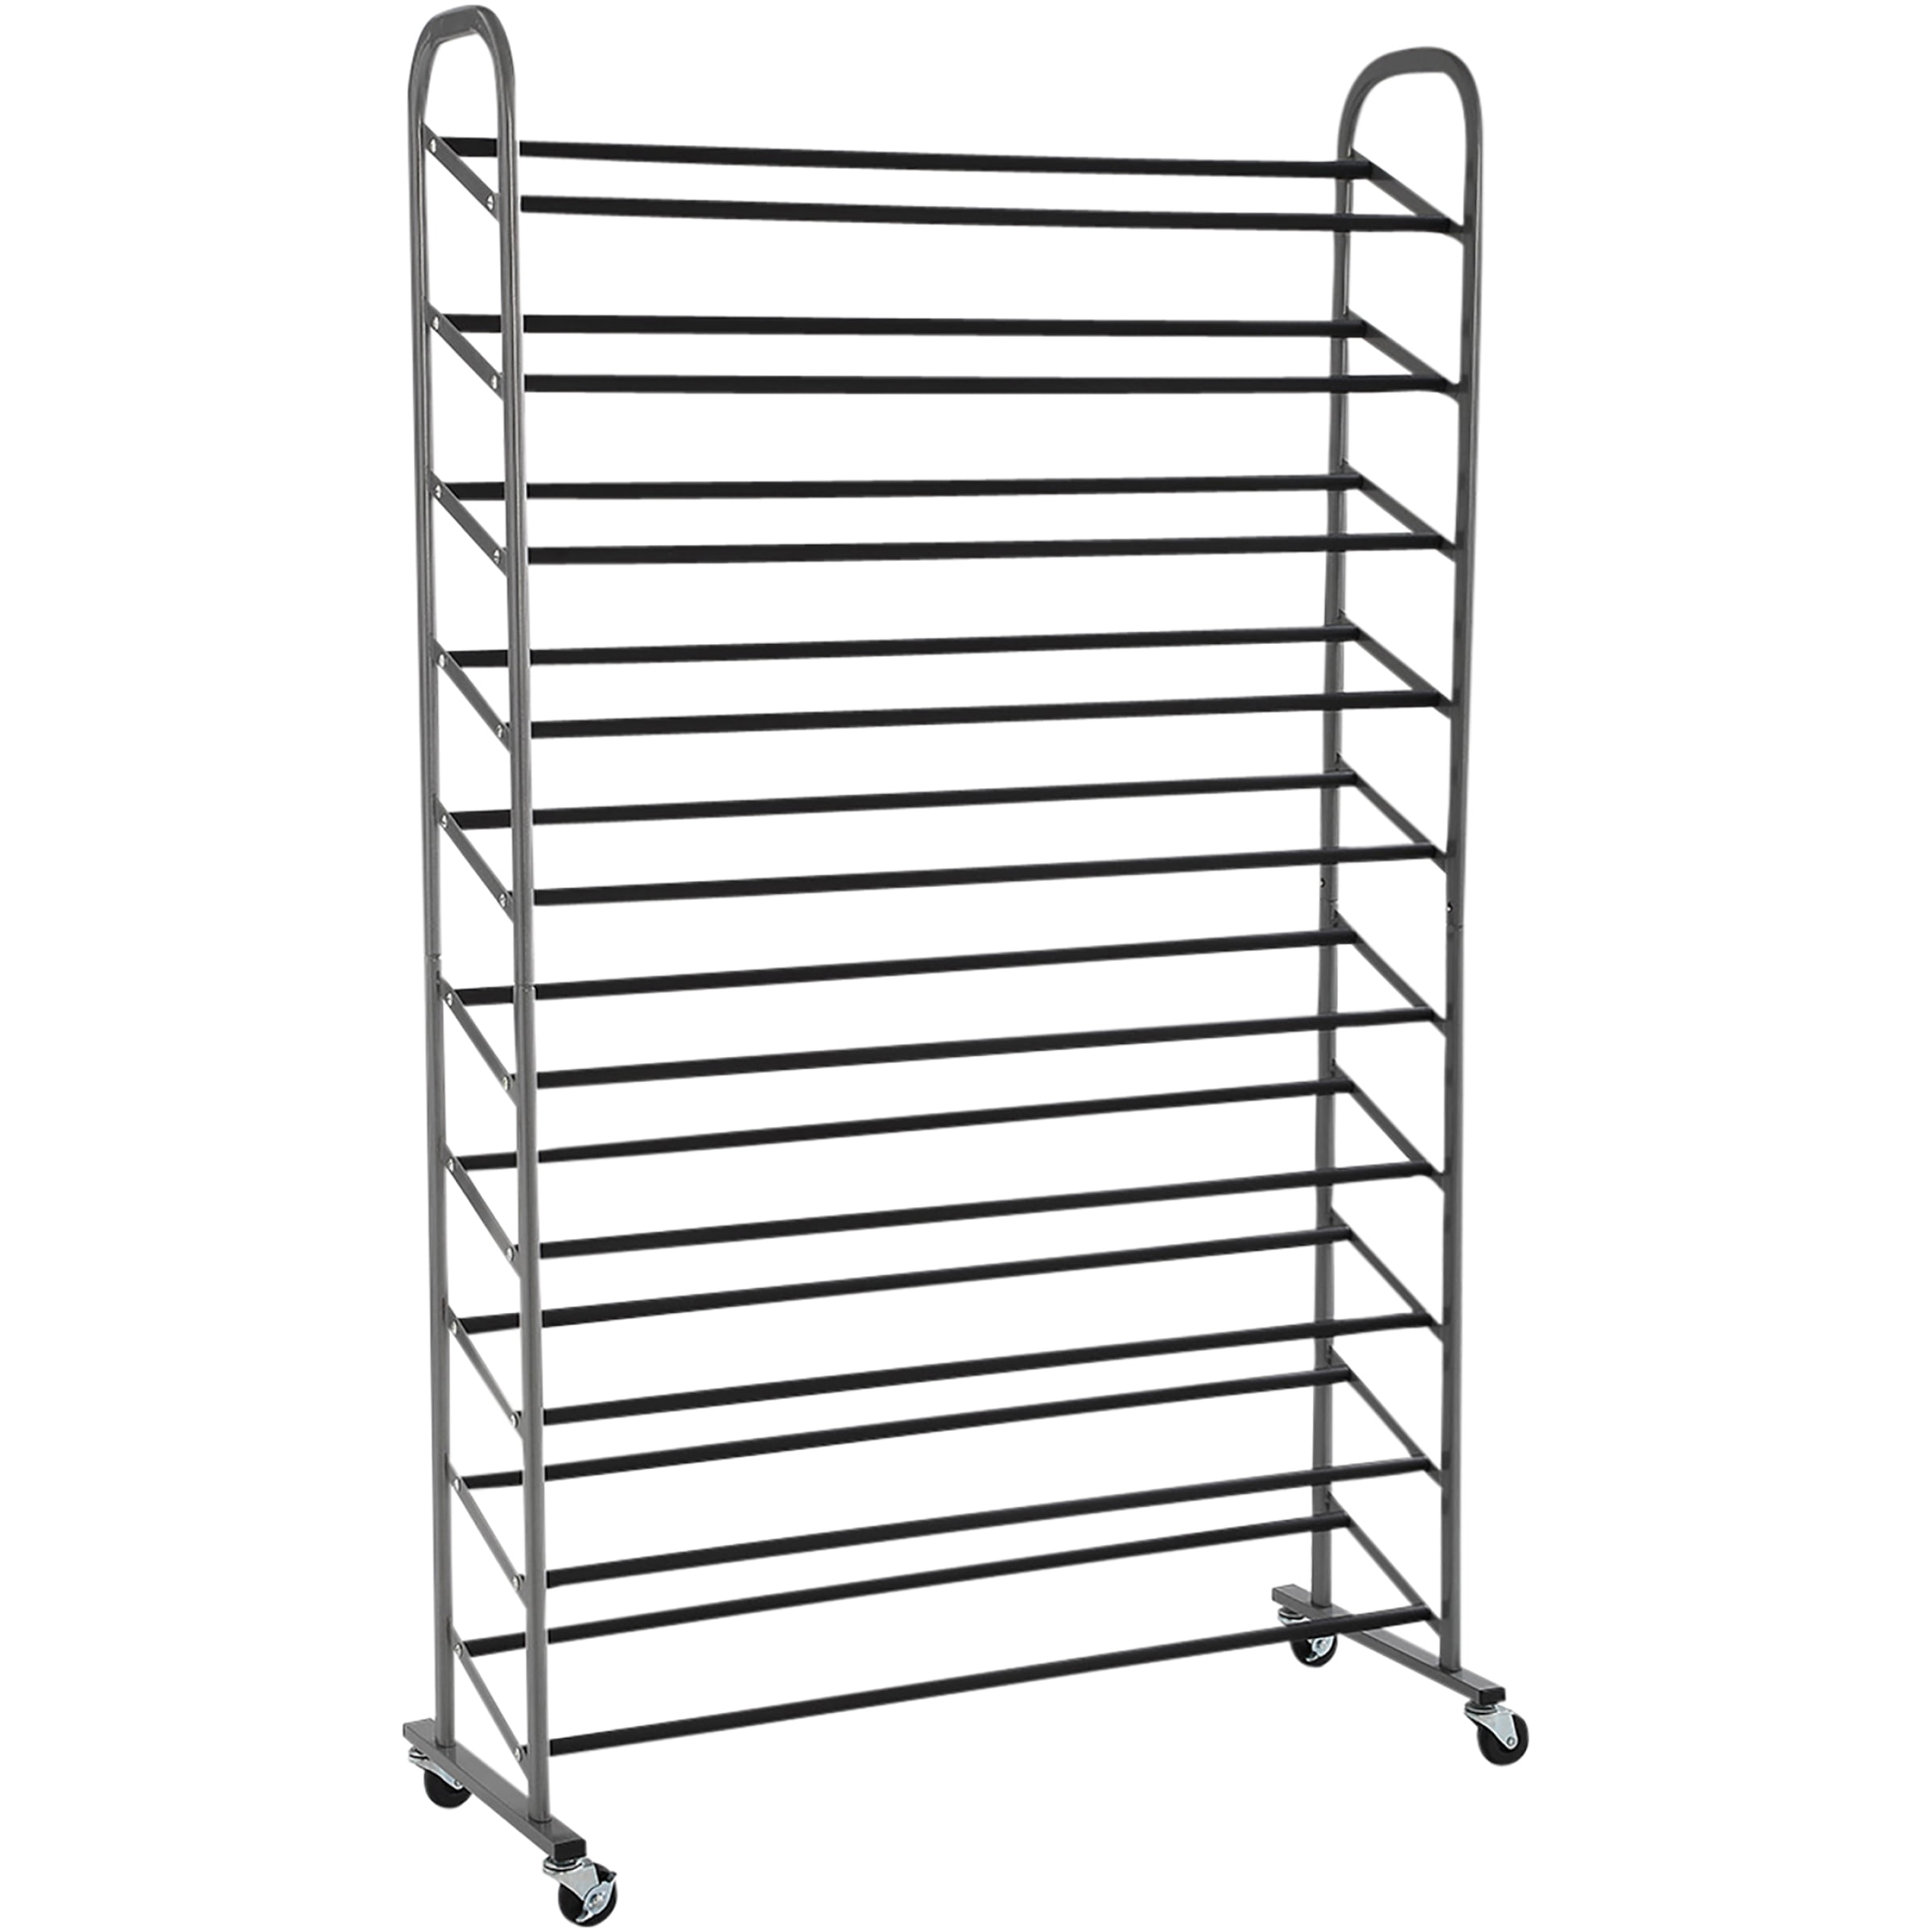 Mainstays 10 Tier Rolling Shoe Rack Versatile Design For All Shoe Types Walmart Com Walmart Com